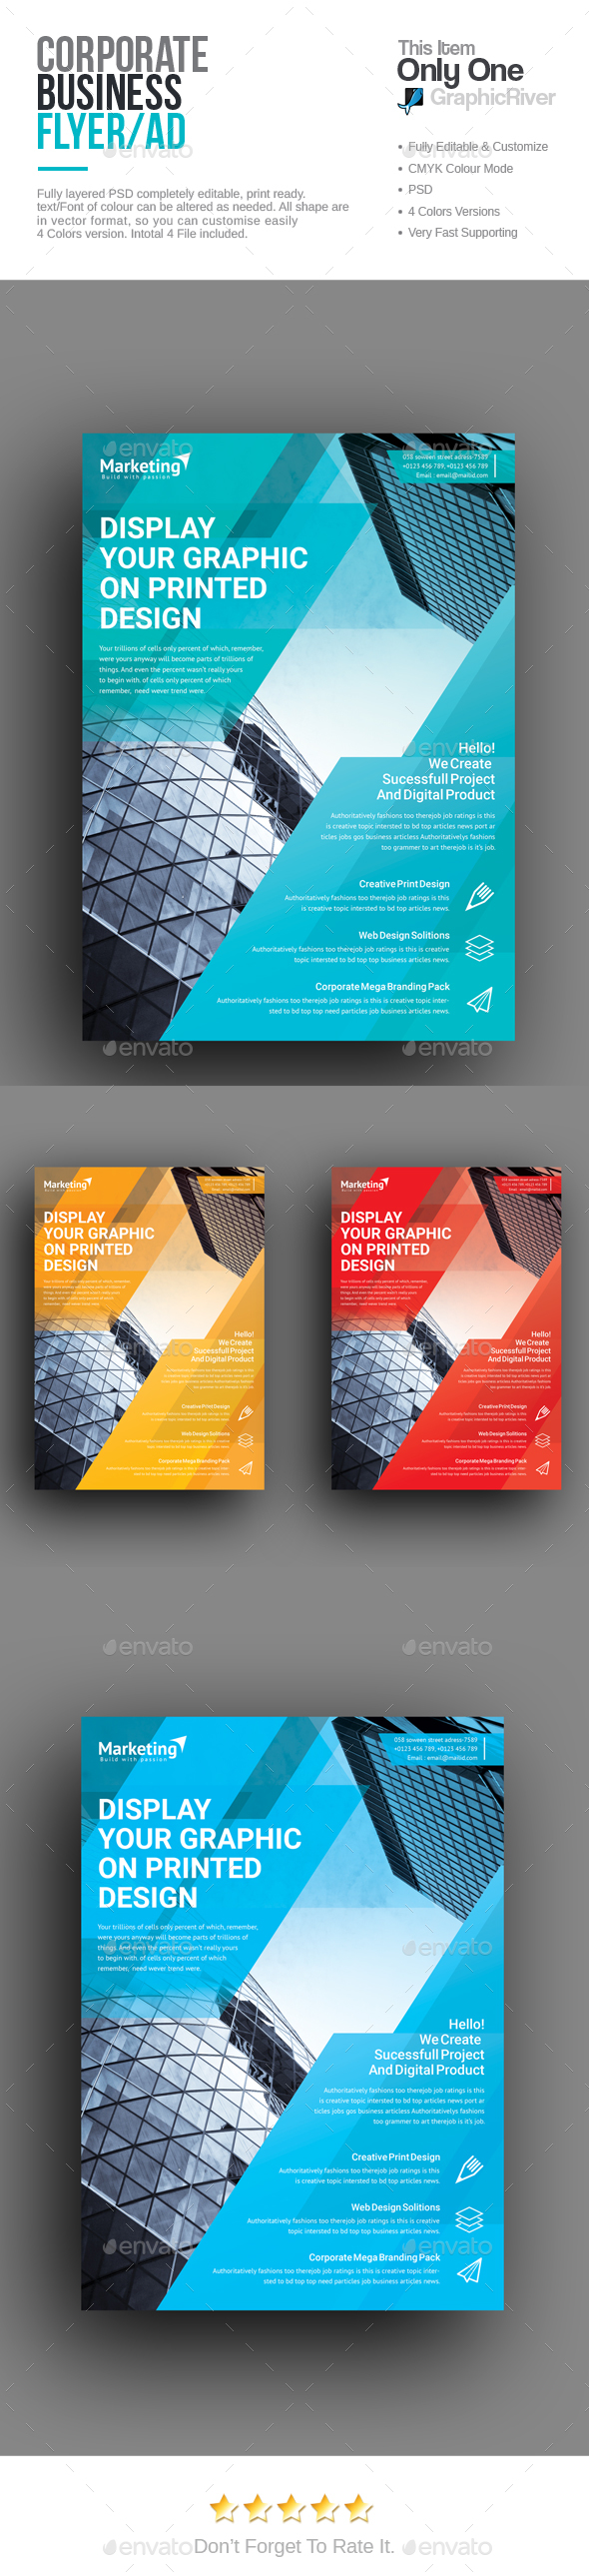 Corporate Flyer Template PSD. Download here: http://graphicriver.net/item/corporate-flyer/16437630?ref=ksioks